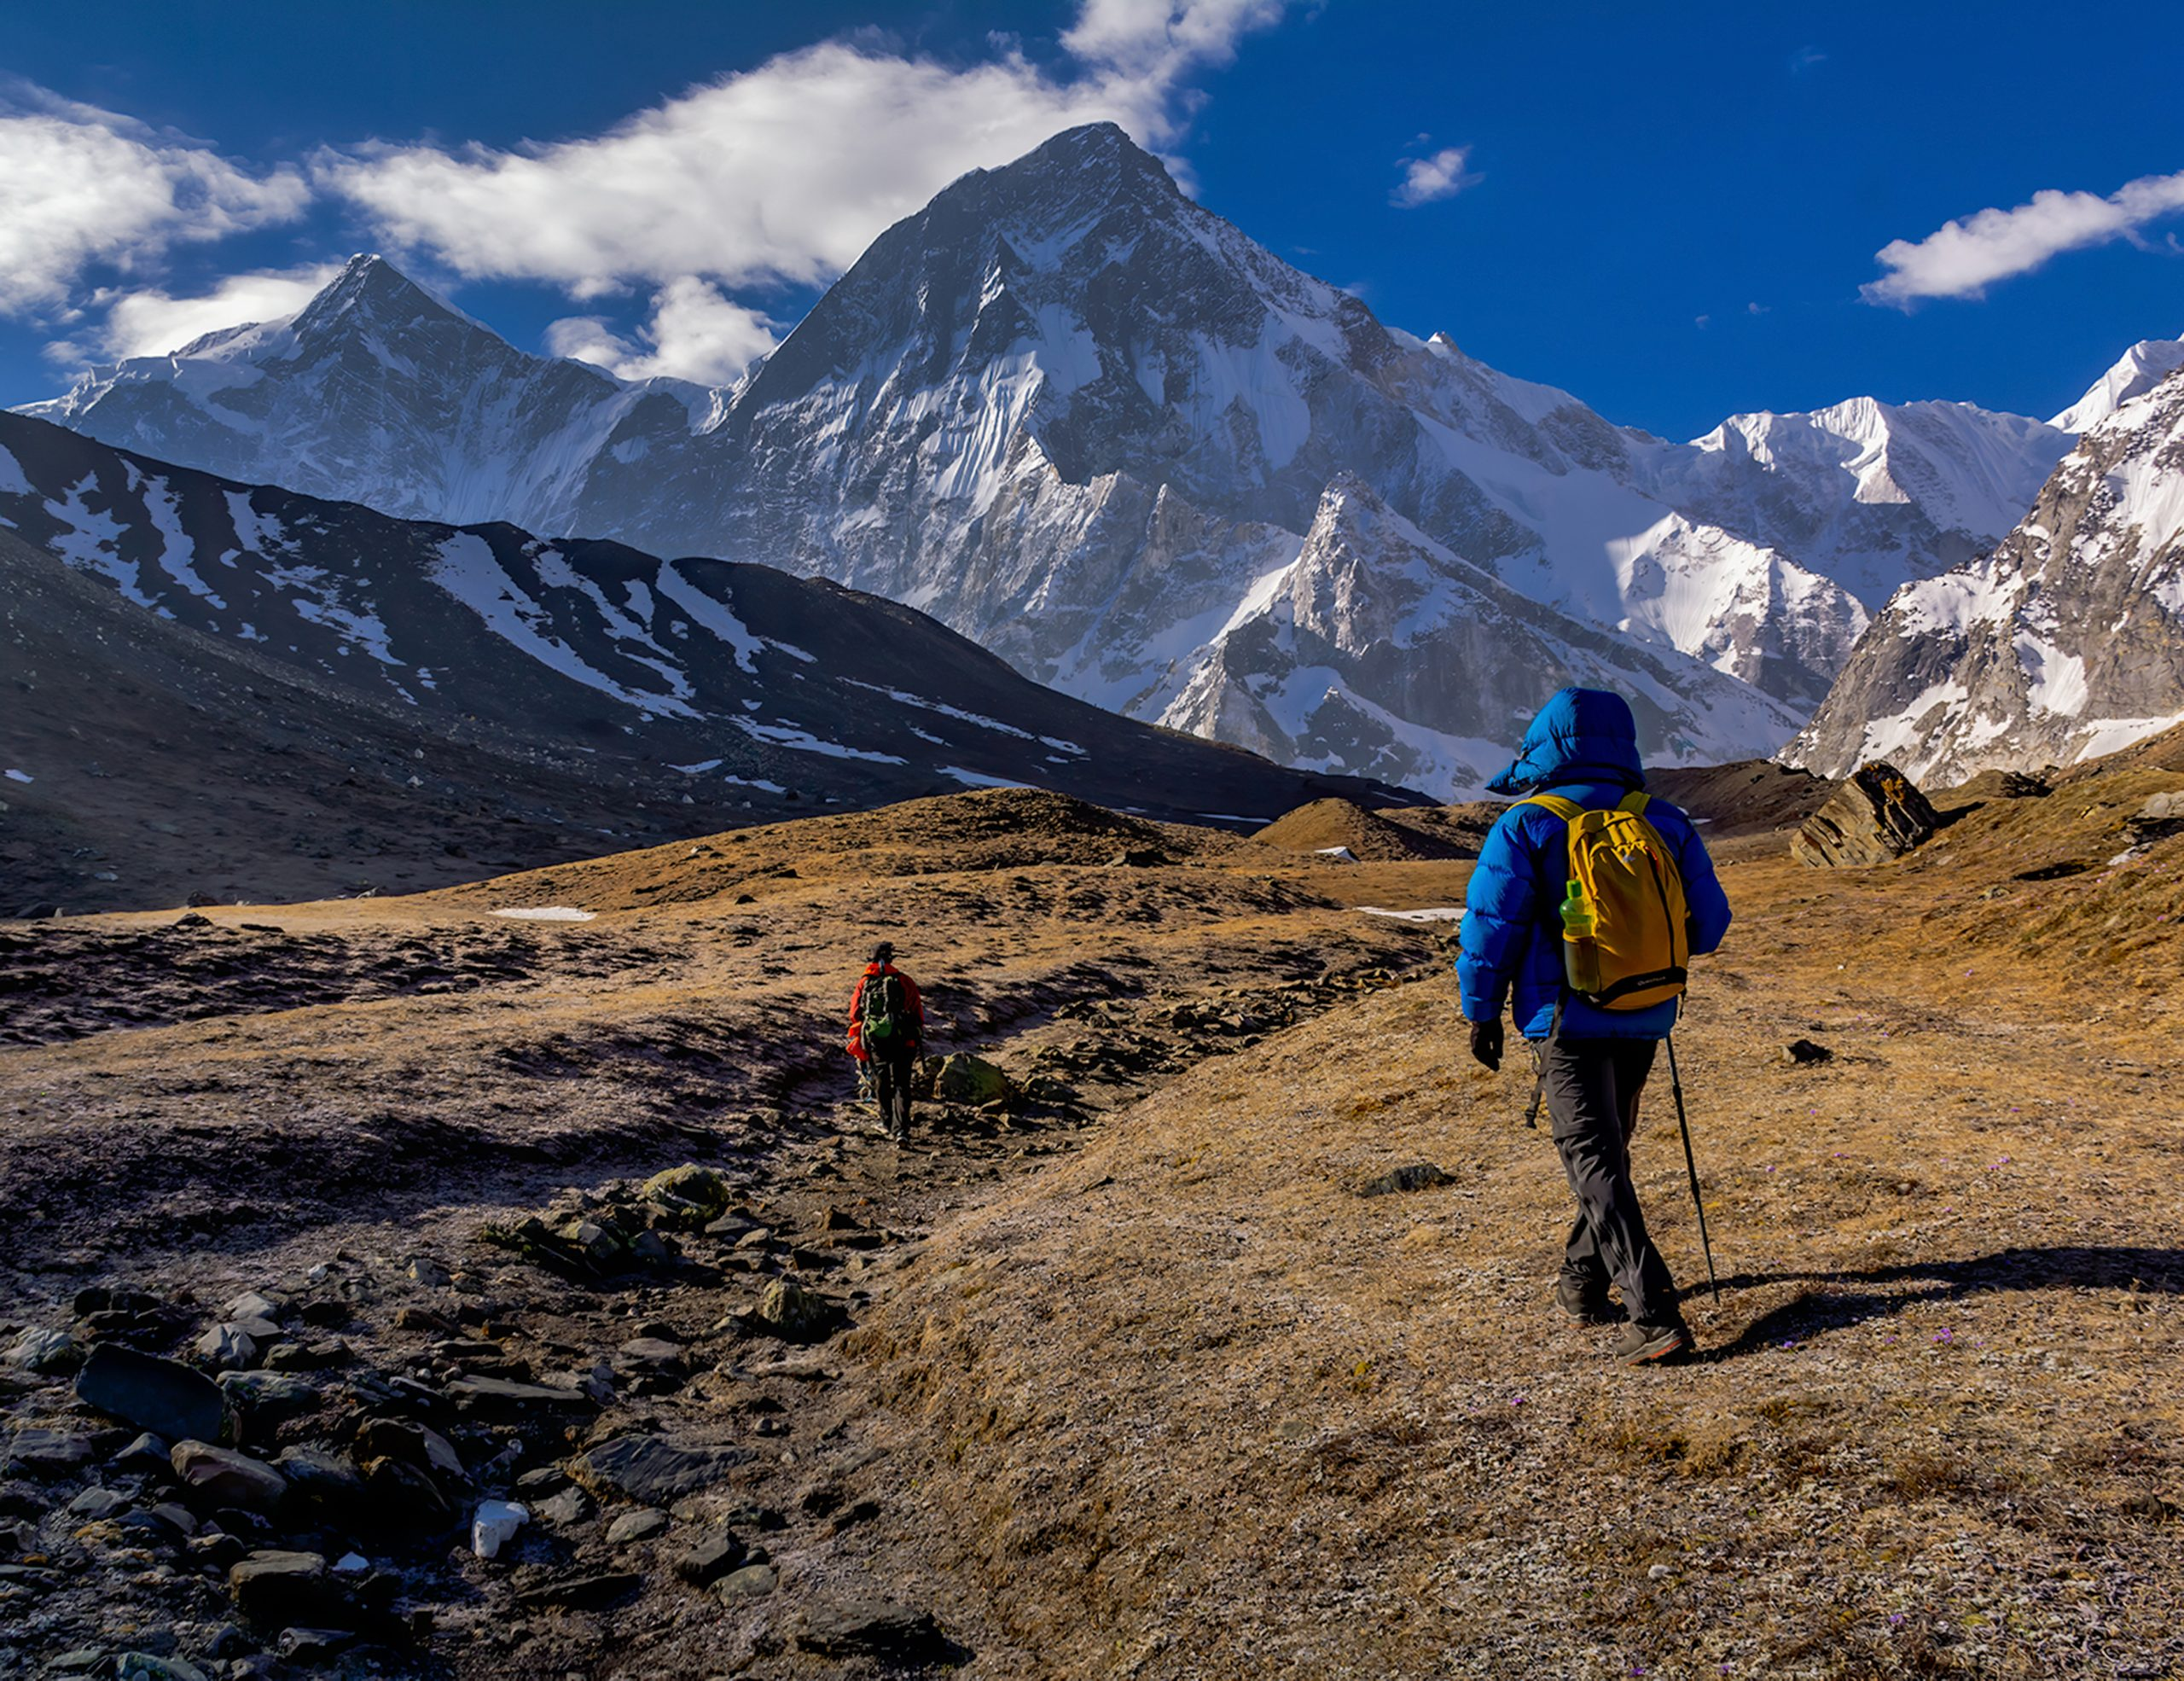 Humans trekking on a valley